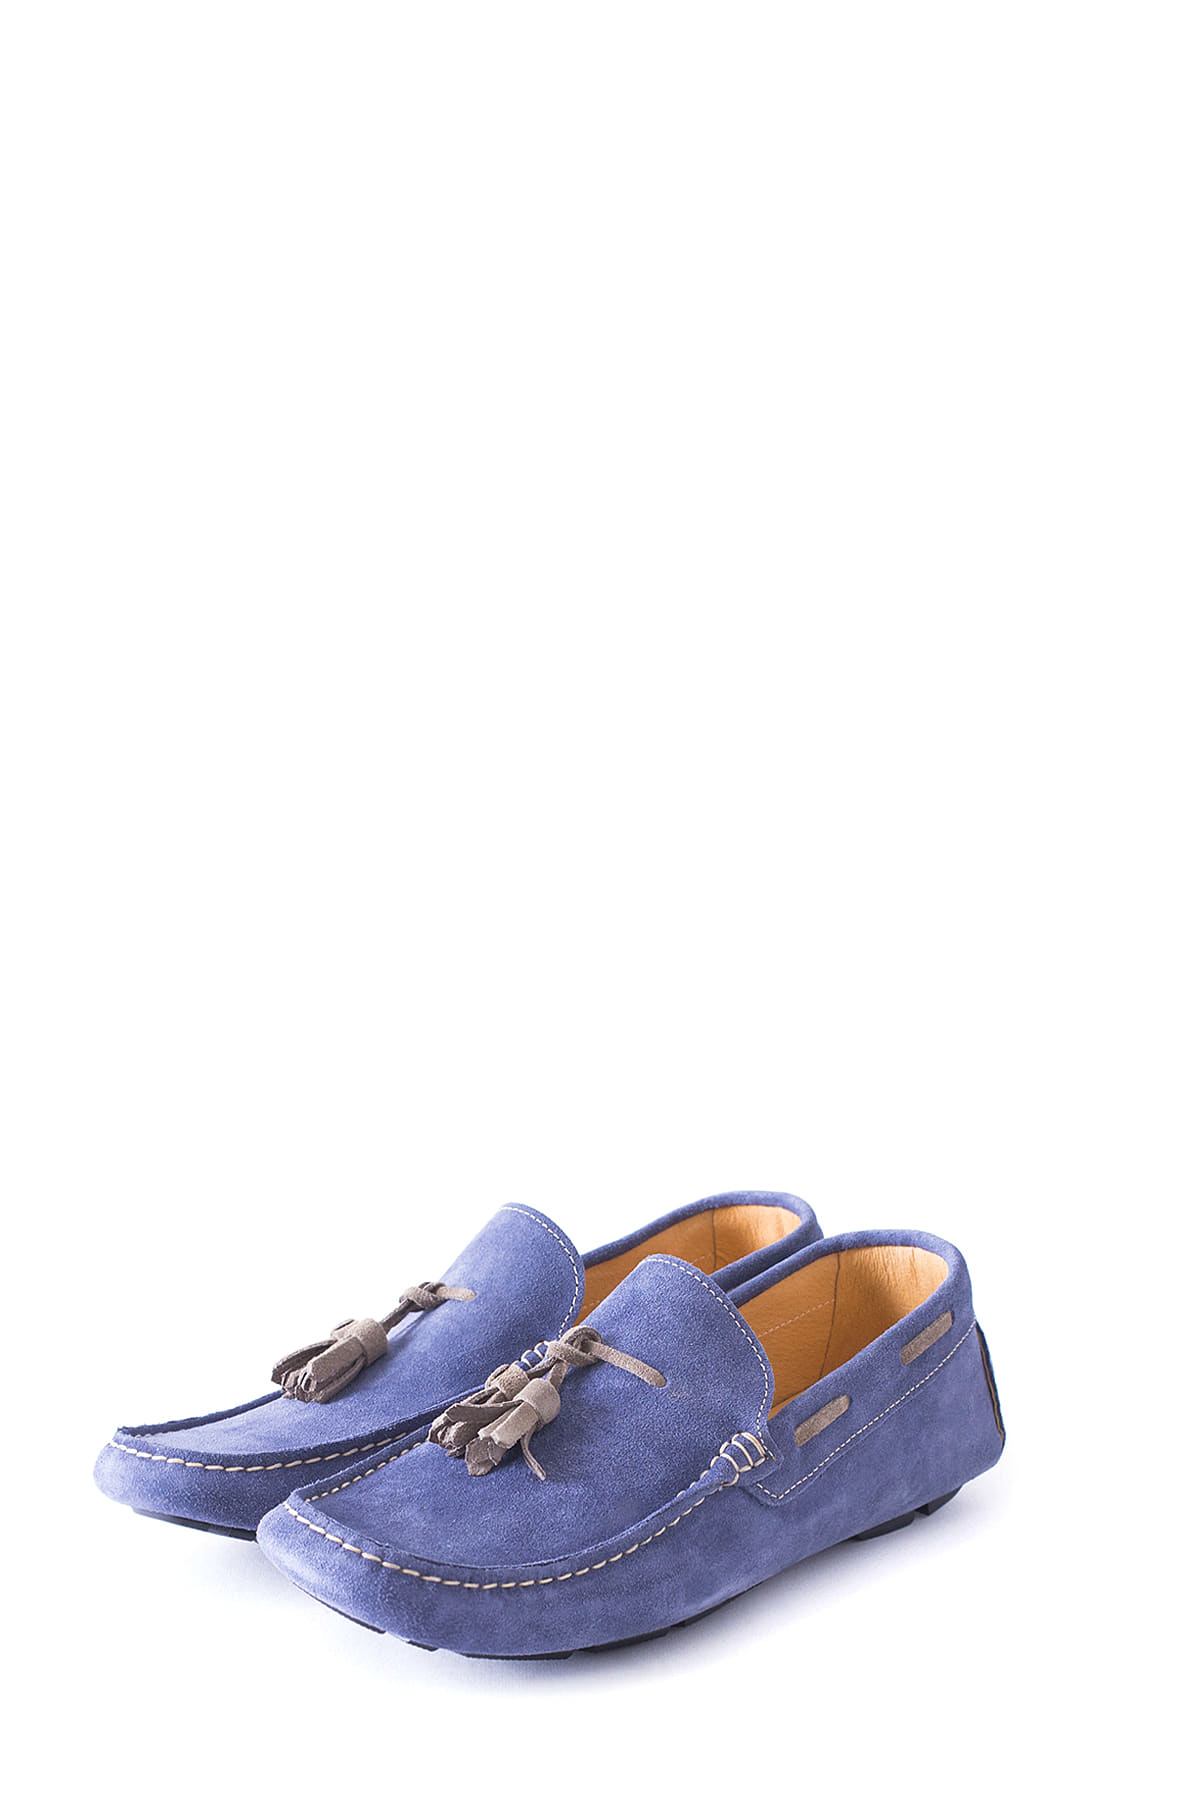 Pico Maranta : Driving Shoes (Denim)